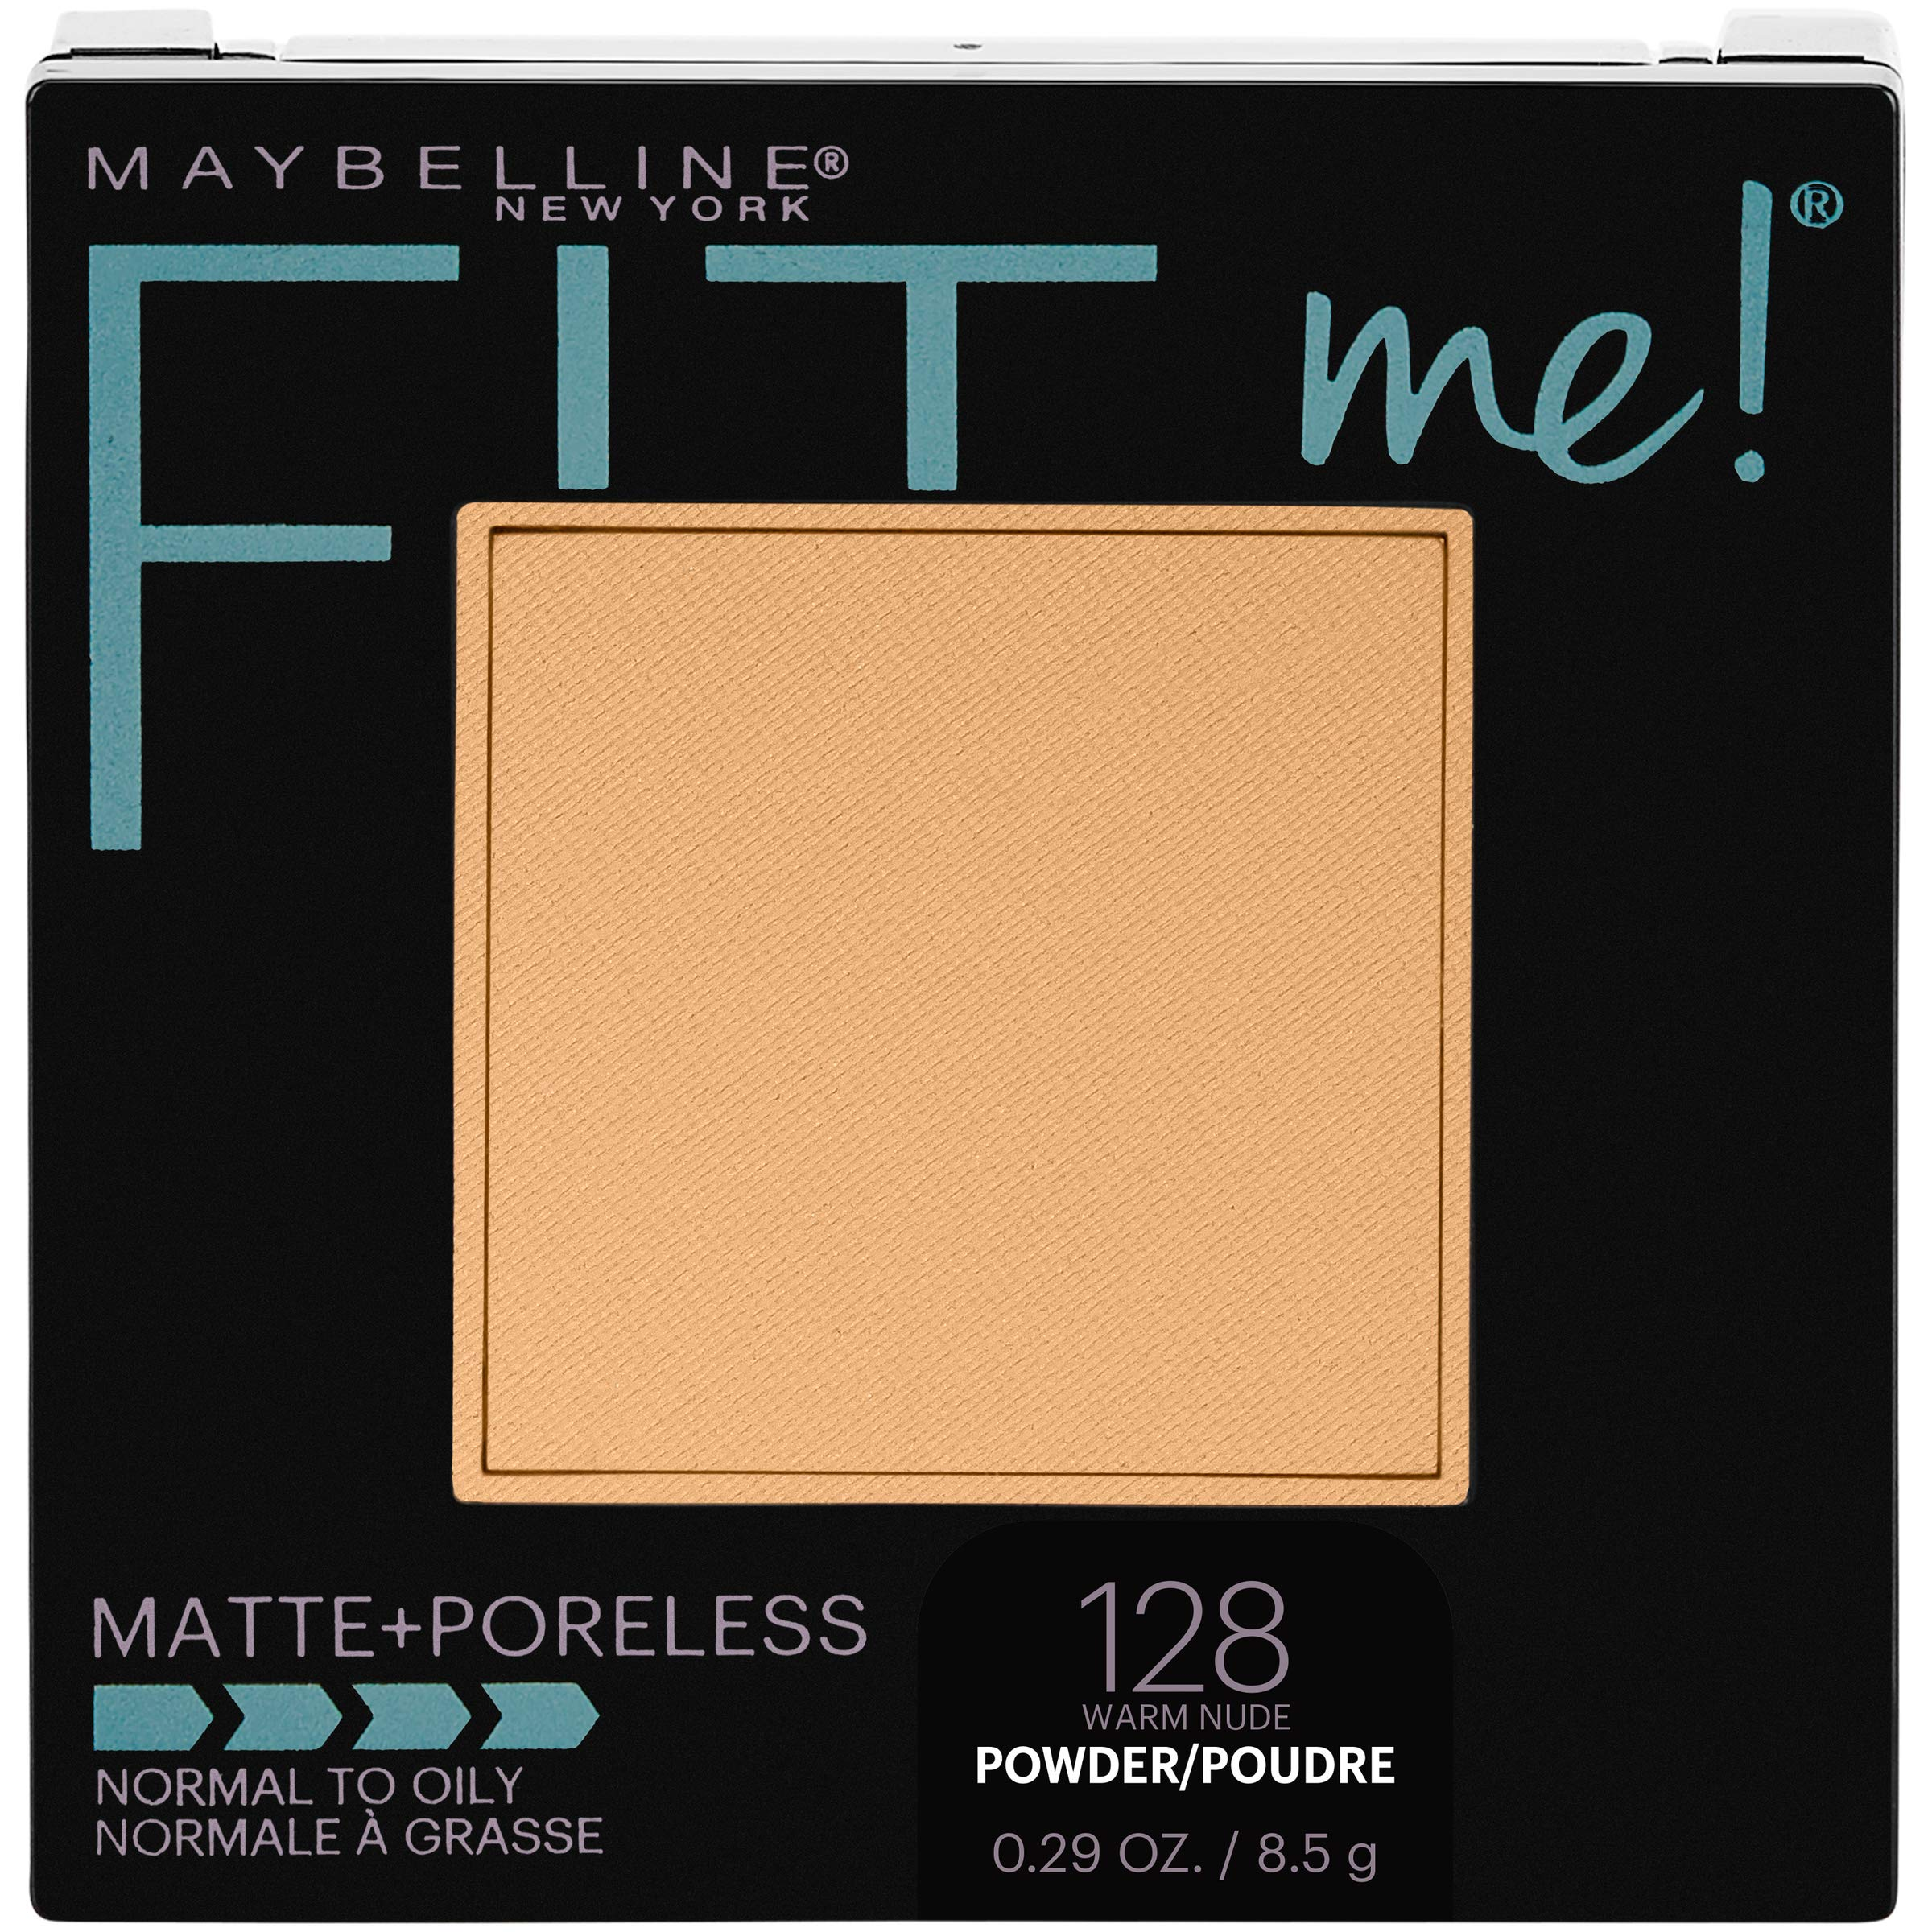 Maybelline New York Fit Me Matte + Poreless Pressed Face Powder Makeup, Warm Nude, 0.28 Ounce, Pack of 1